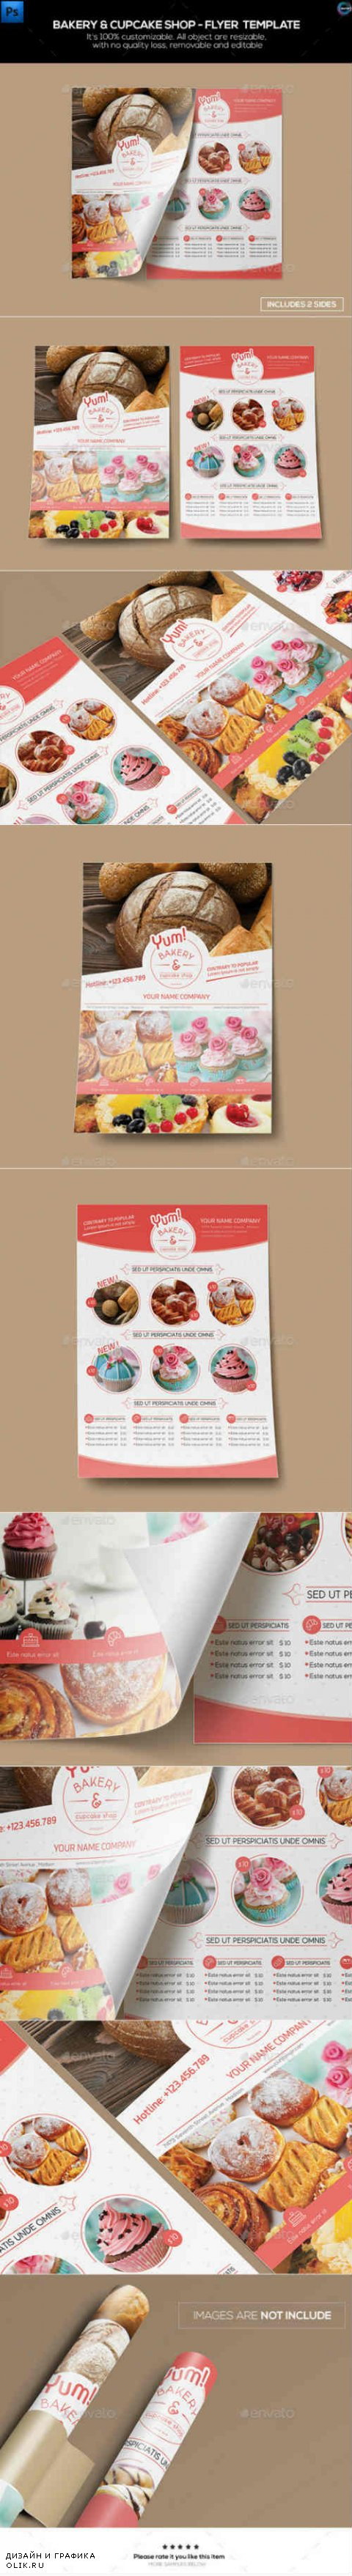 Bakery & Cupcake Shop - Flyer Template 12485922